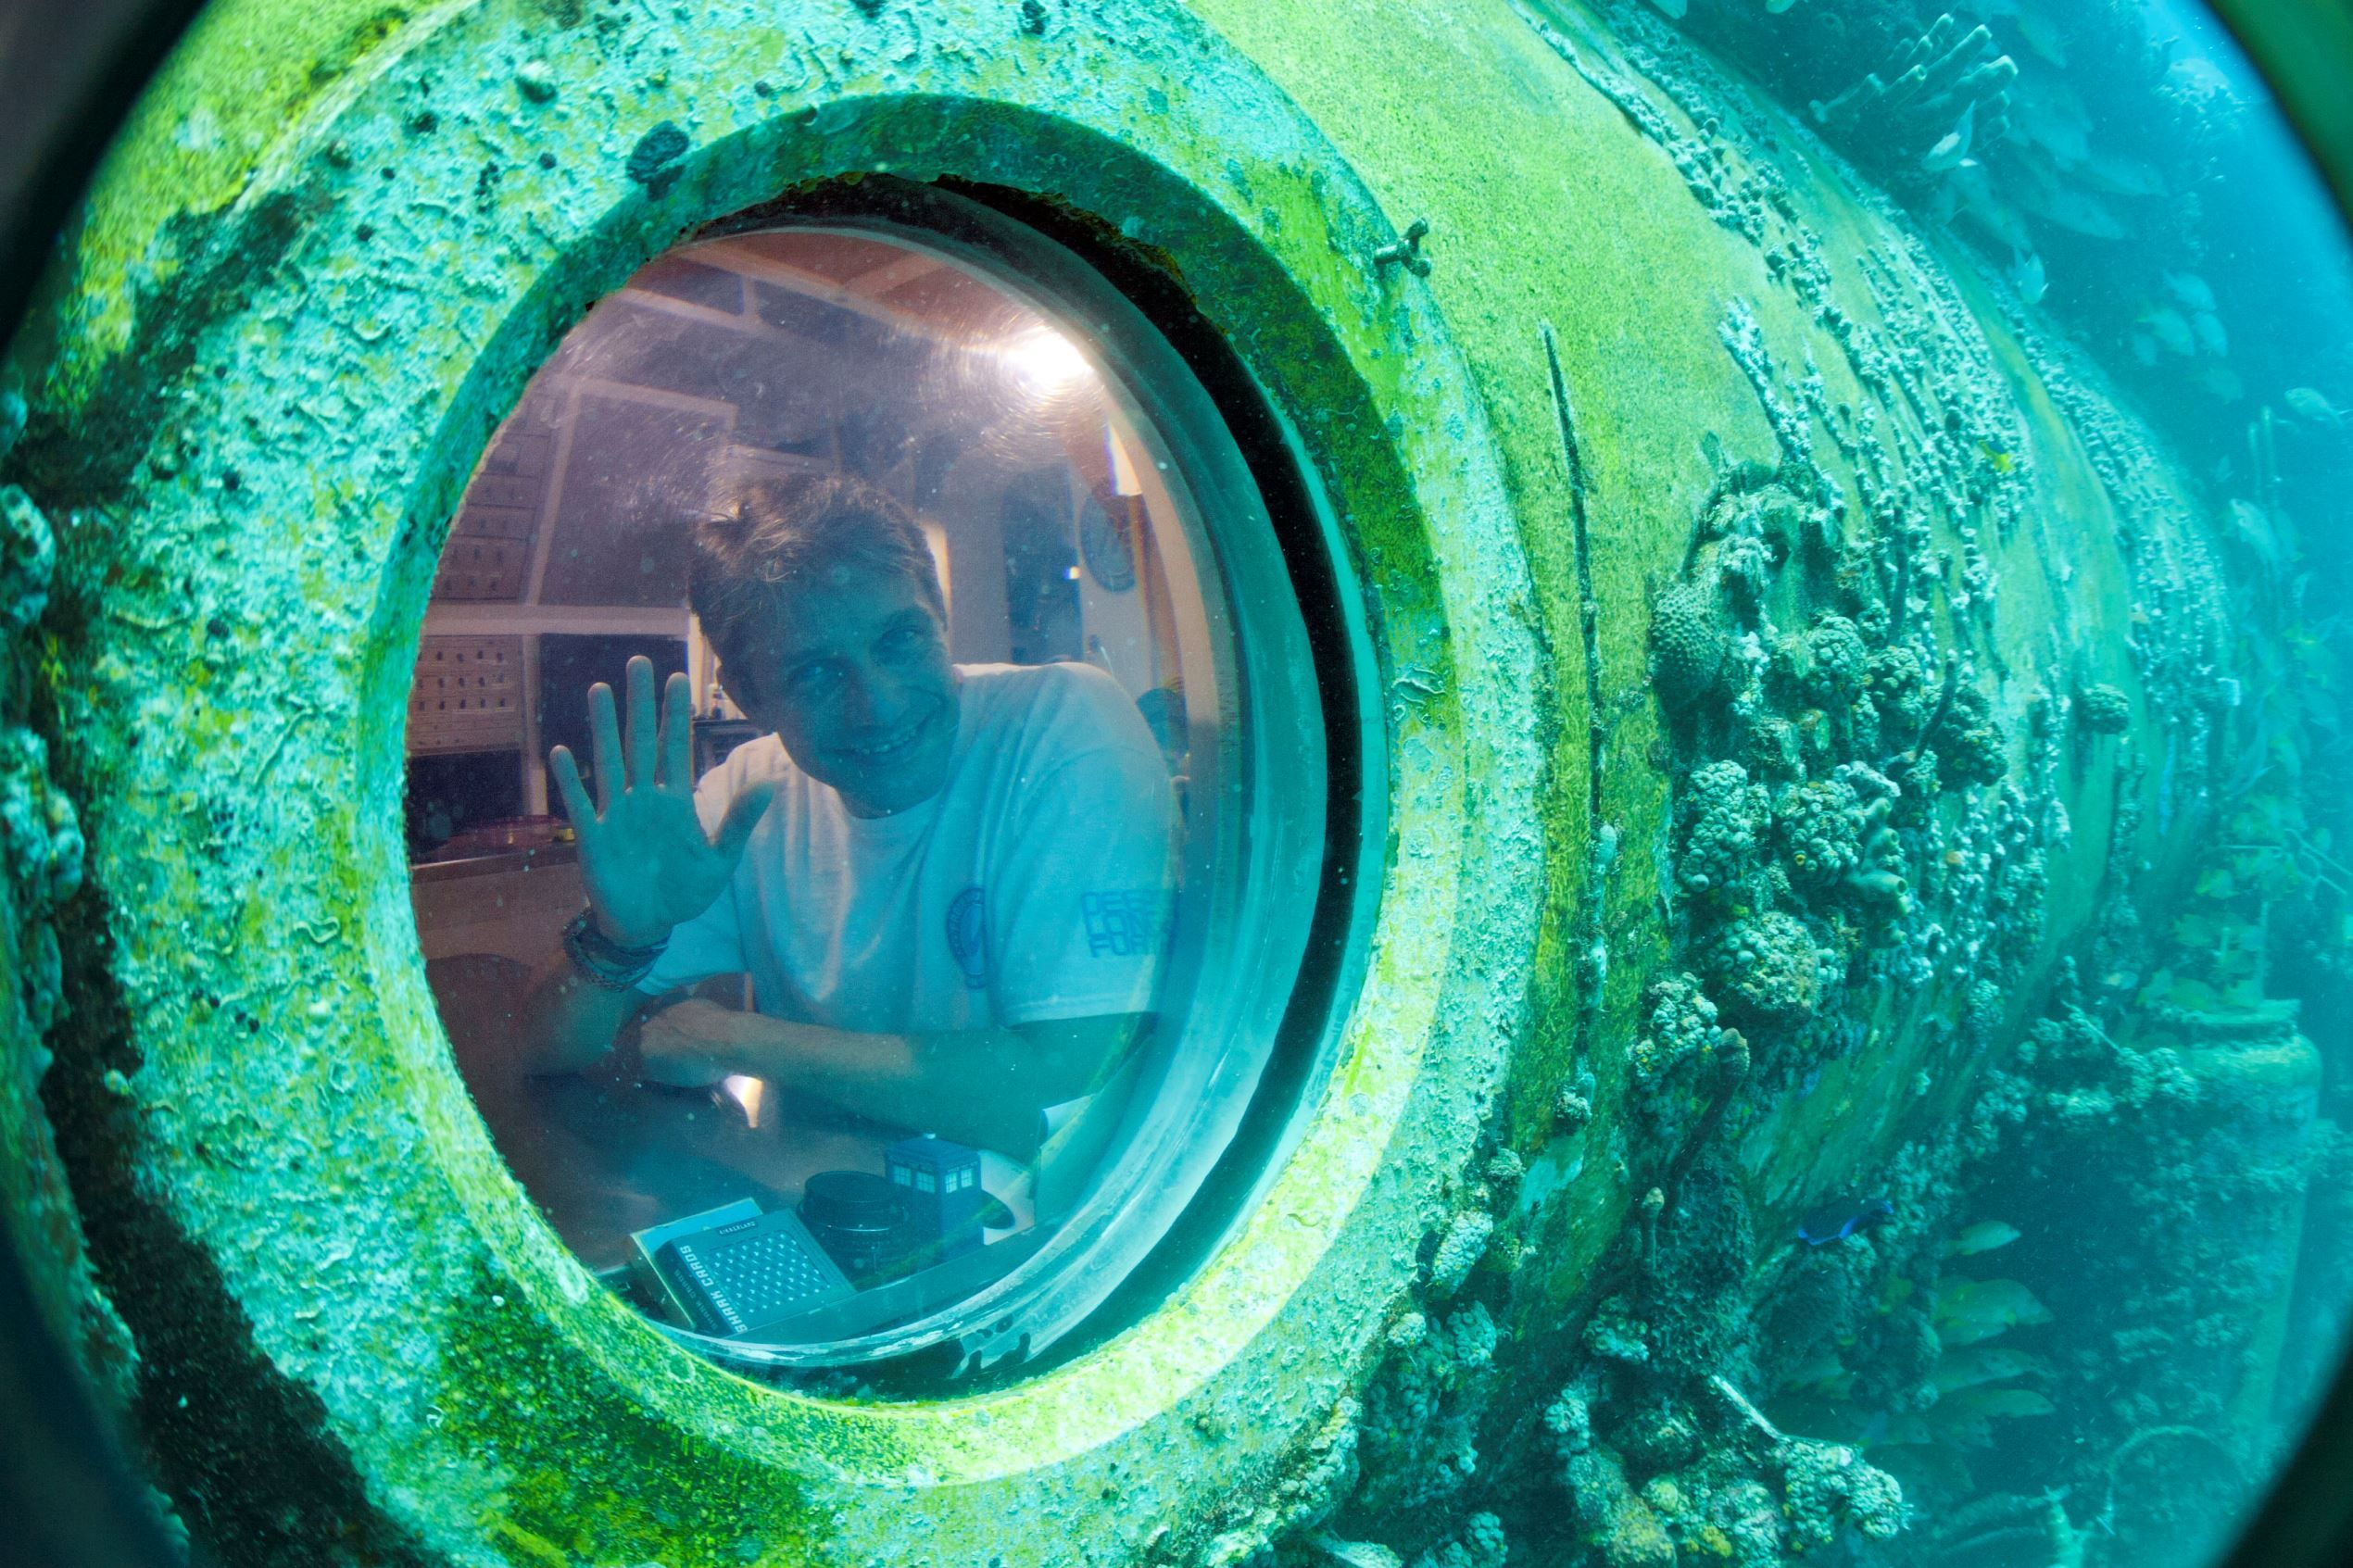 June 1: Fabien Cousteau begins Record-Breaking 31 Days Under Water-he is the grandson of famed ocean explorer Jacques (who I grew up watching on TV) and went to live on the undersea laboratory Aquarius, 19.2 (63ft) below the surface in the waters off Key Largo, in Fla. Keys. He spent his time studying the effects of climate change and pollutants, such as fertilizers, on the reef.